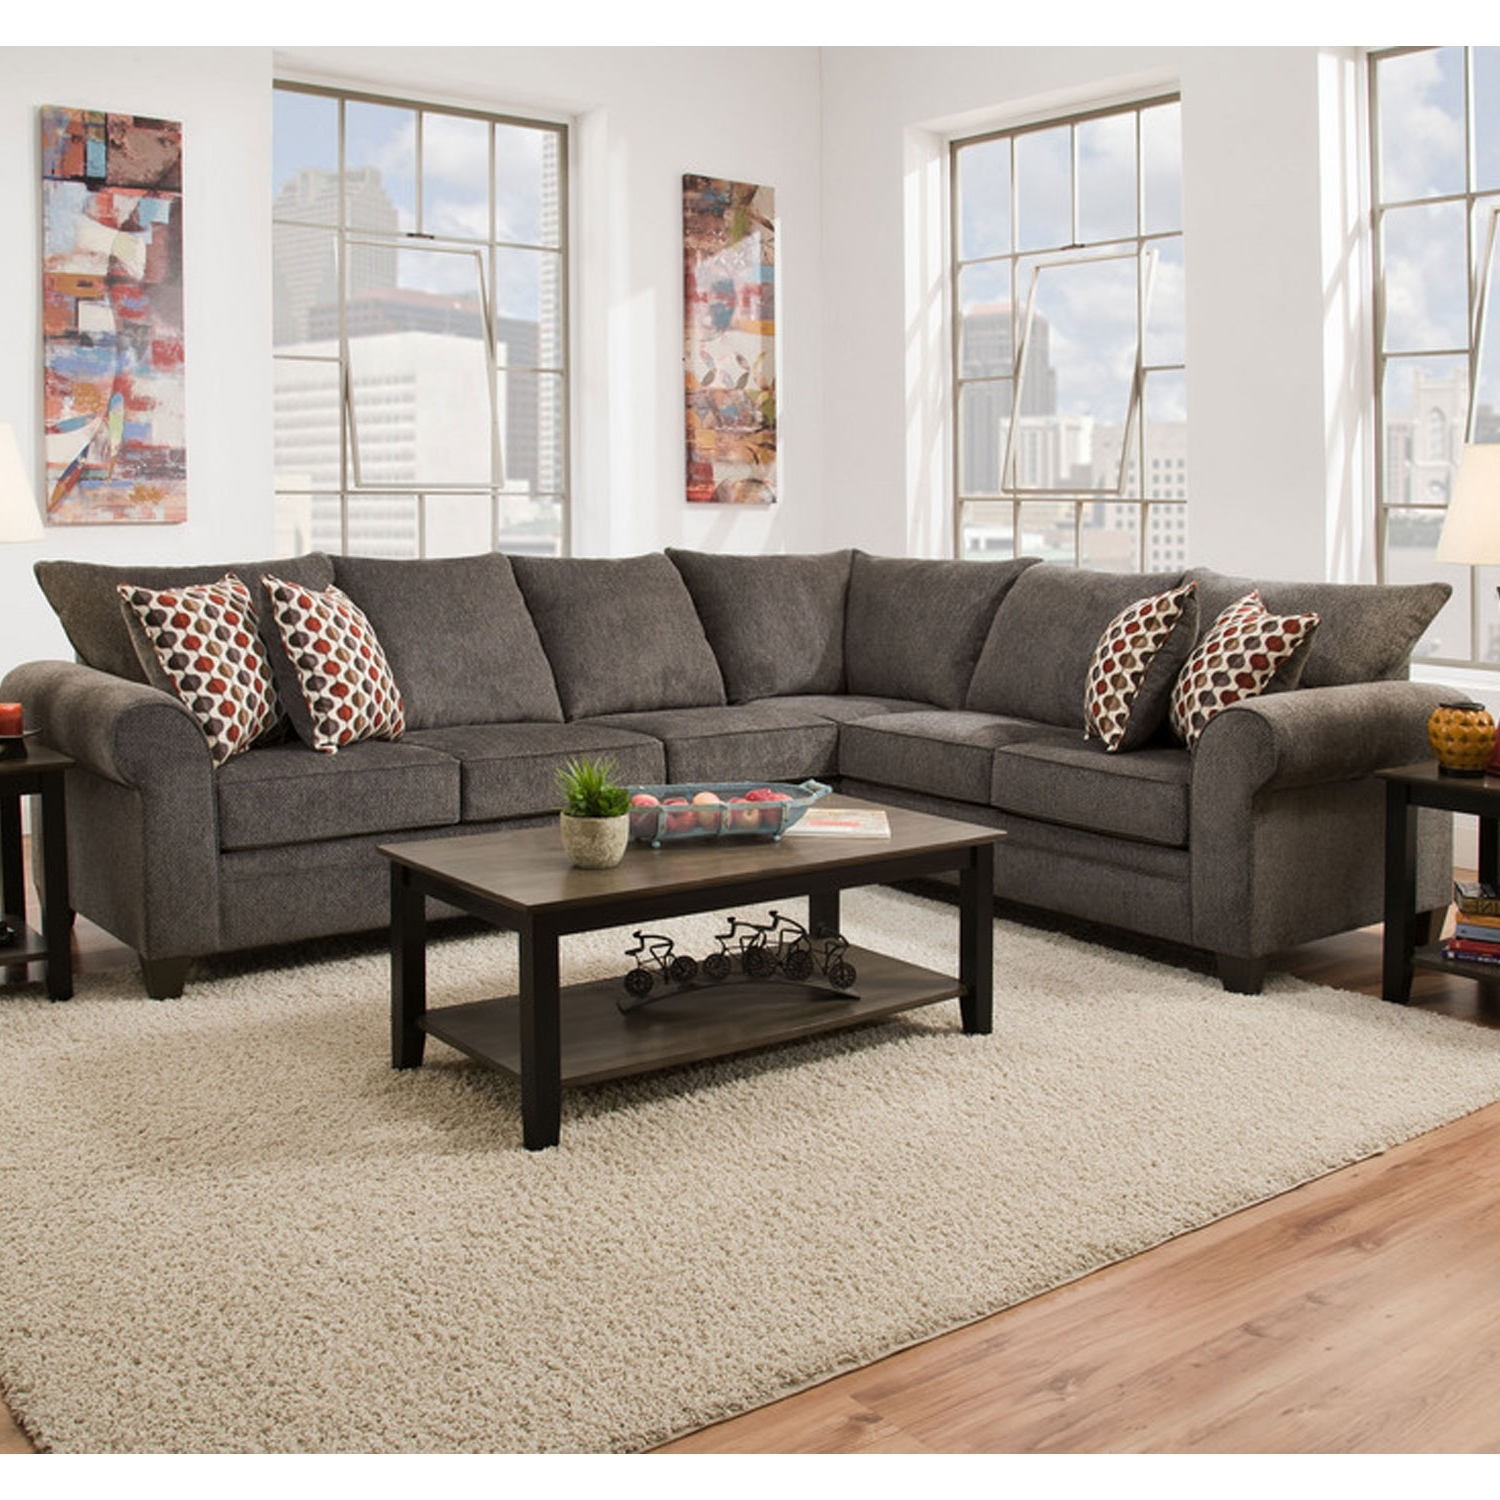 Simmons Sectional Sofas With Most Recently Released Simmons 1647 Sectional Sofa Albany Pewter (View 5 of 15)